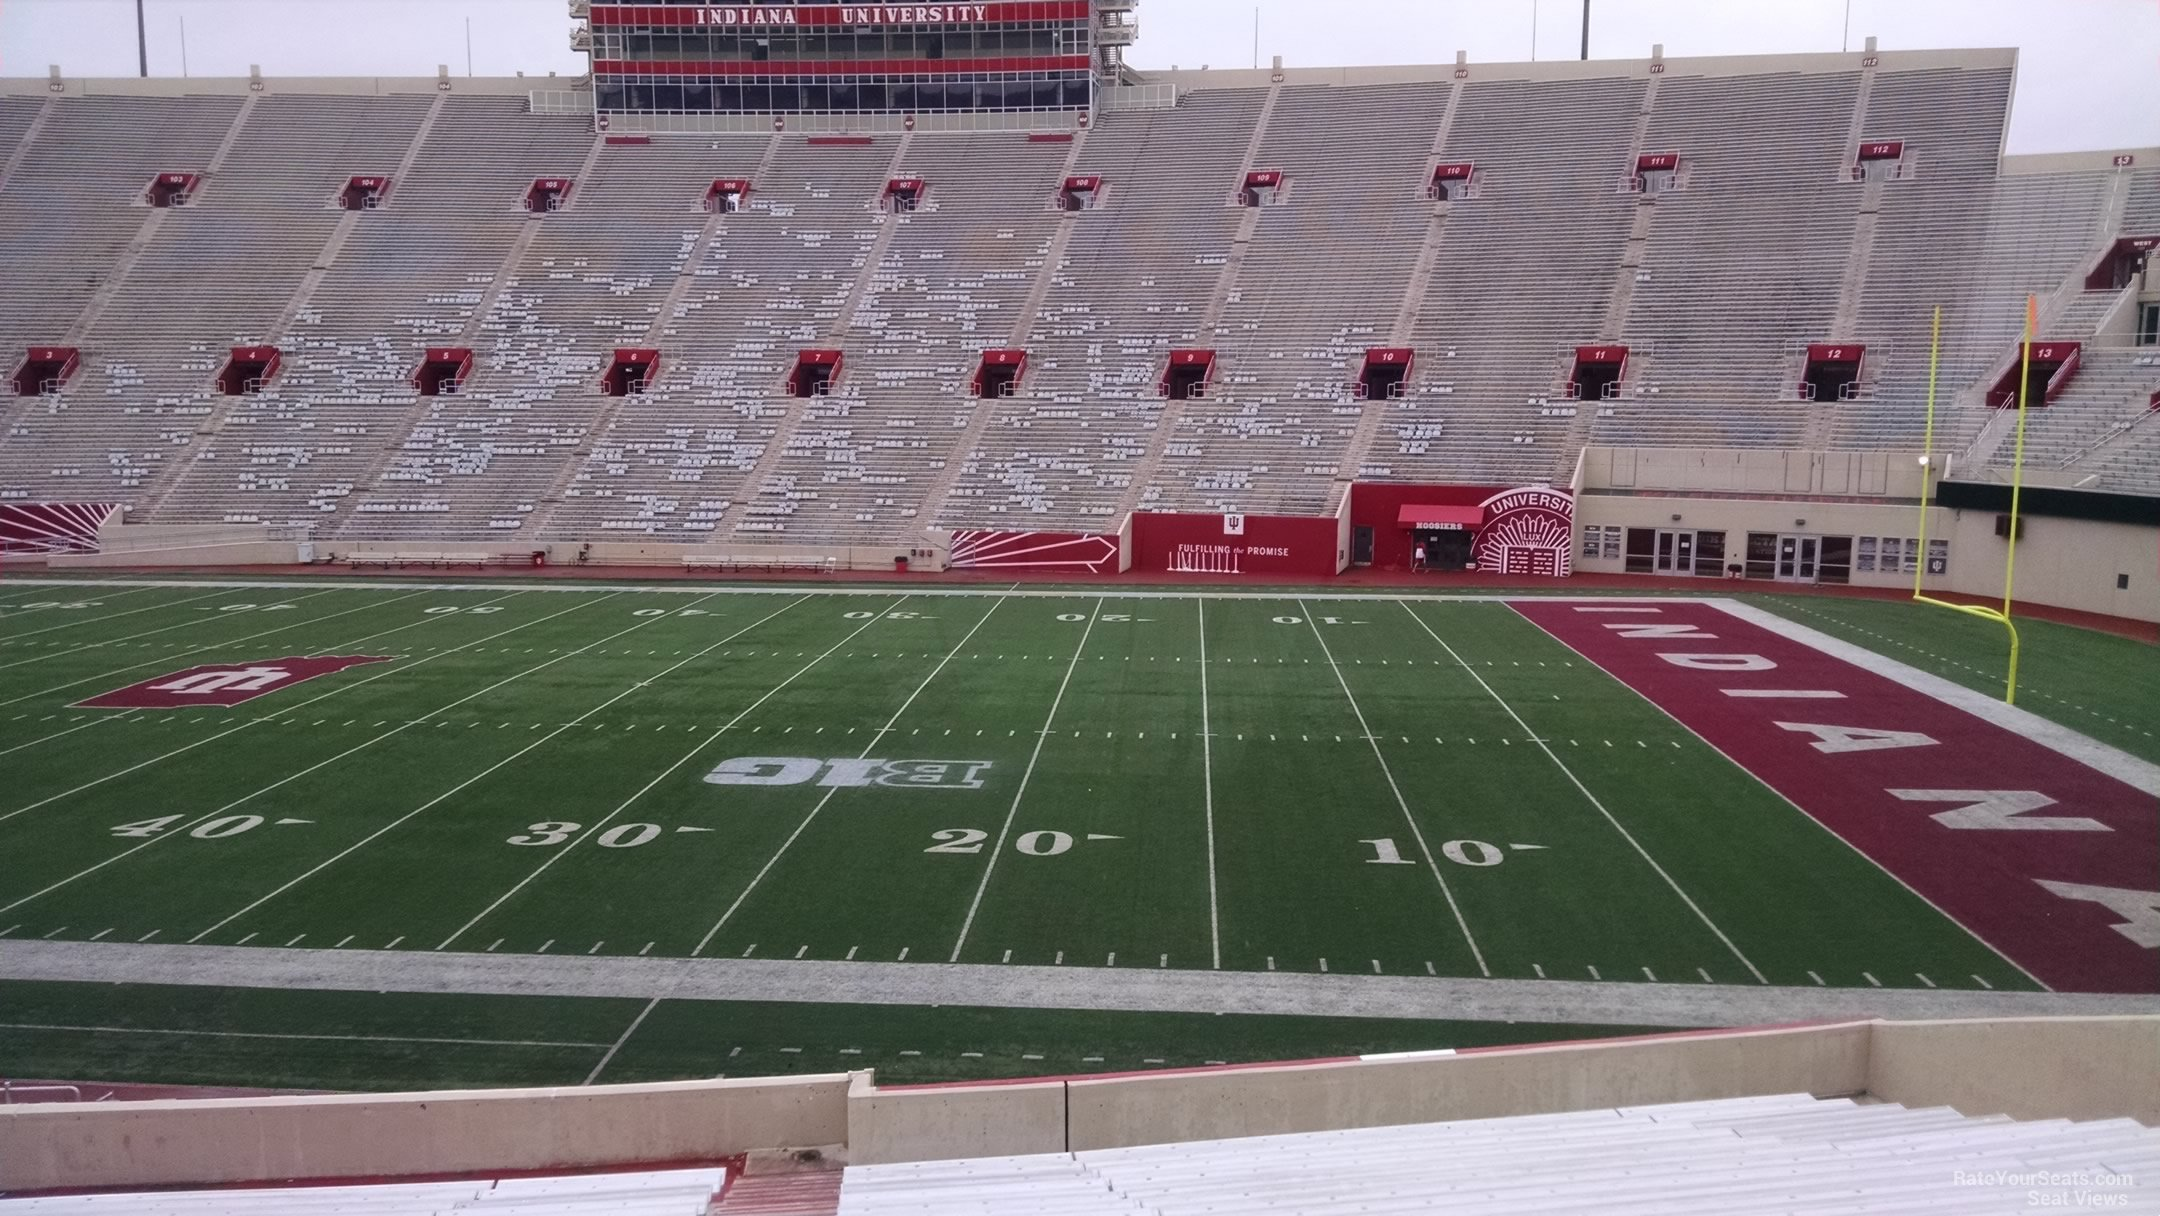 Seat View for Memorial Stadium - IN Section 24, Row 30